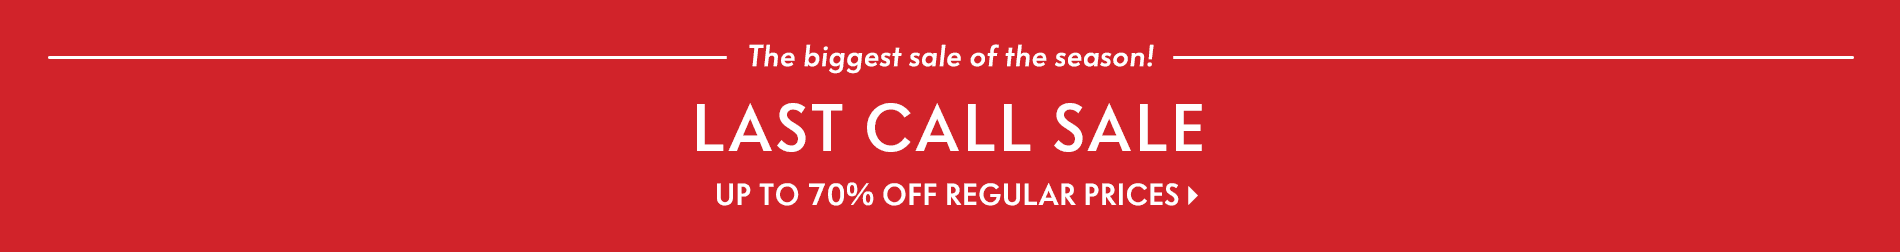 The biggest sale of the season! Last Call Sale - Up to 70% off regular prices